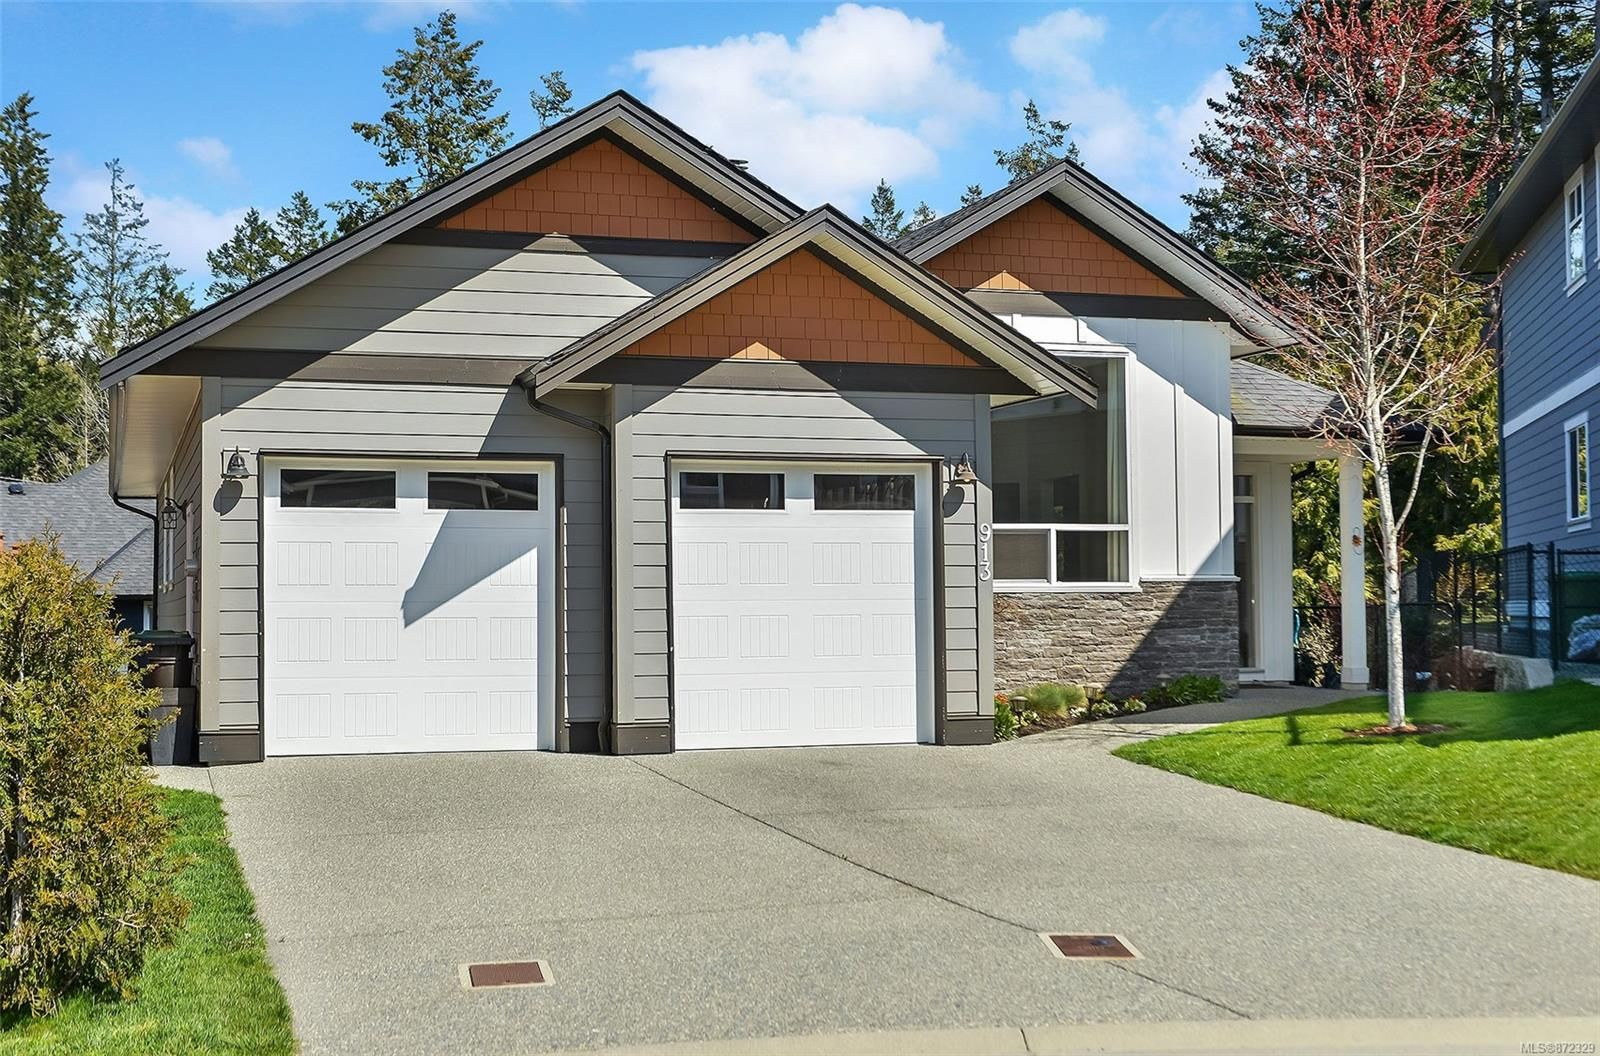 Main Photo: 913 Geo Gdns in : La Olympic View House for sale (Langford)  : MLS®# 872329